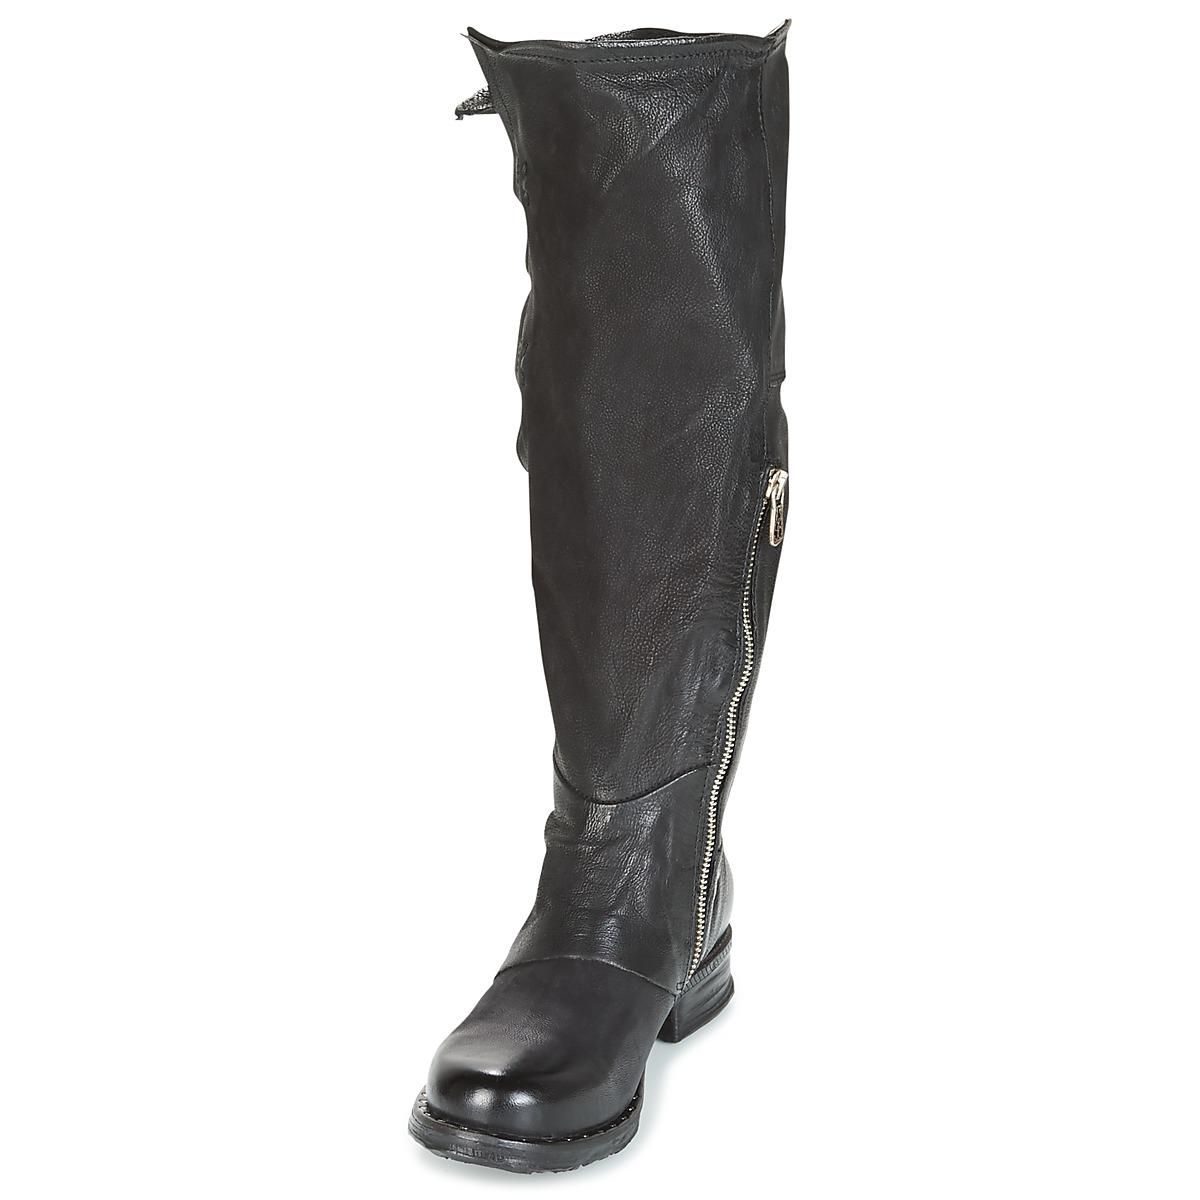 A.s.98 Leather Saintriv Buckle High Boots in Black